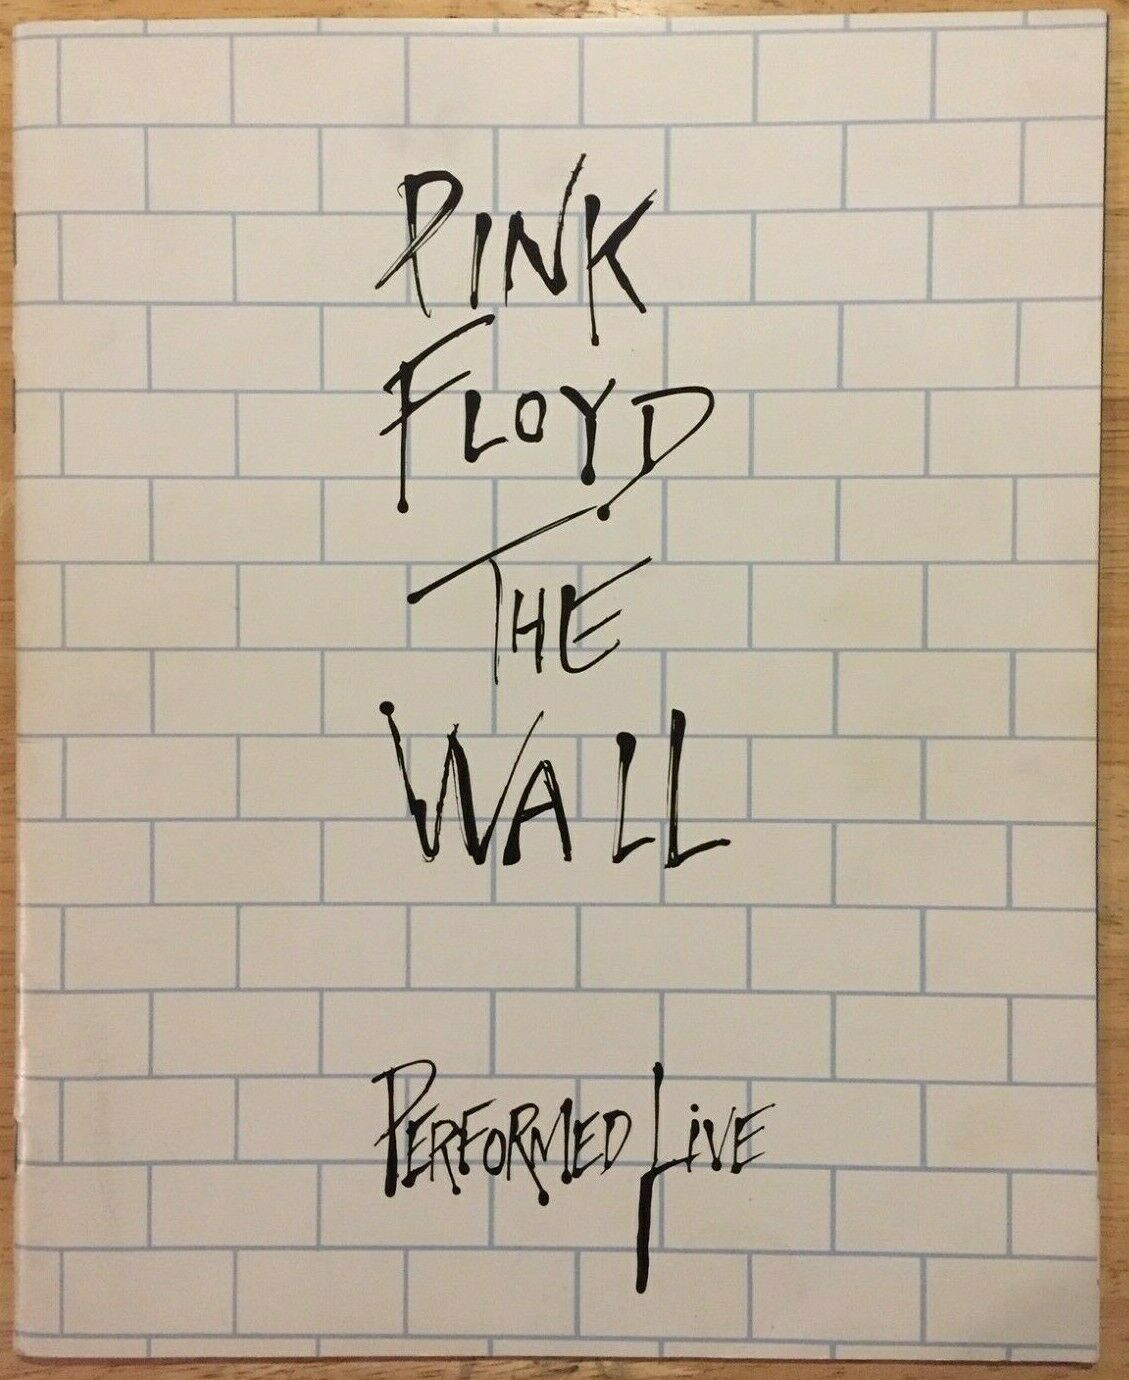 PINK FLOYD The Wall Performed Live 1980 U.S. 24 Page Tour Book Concert Program - $50.00